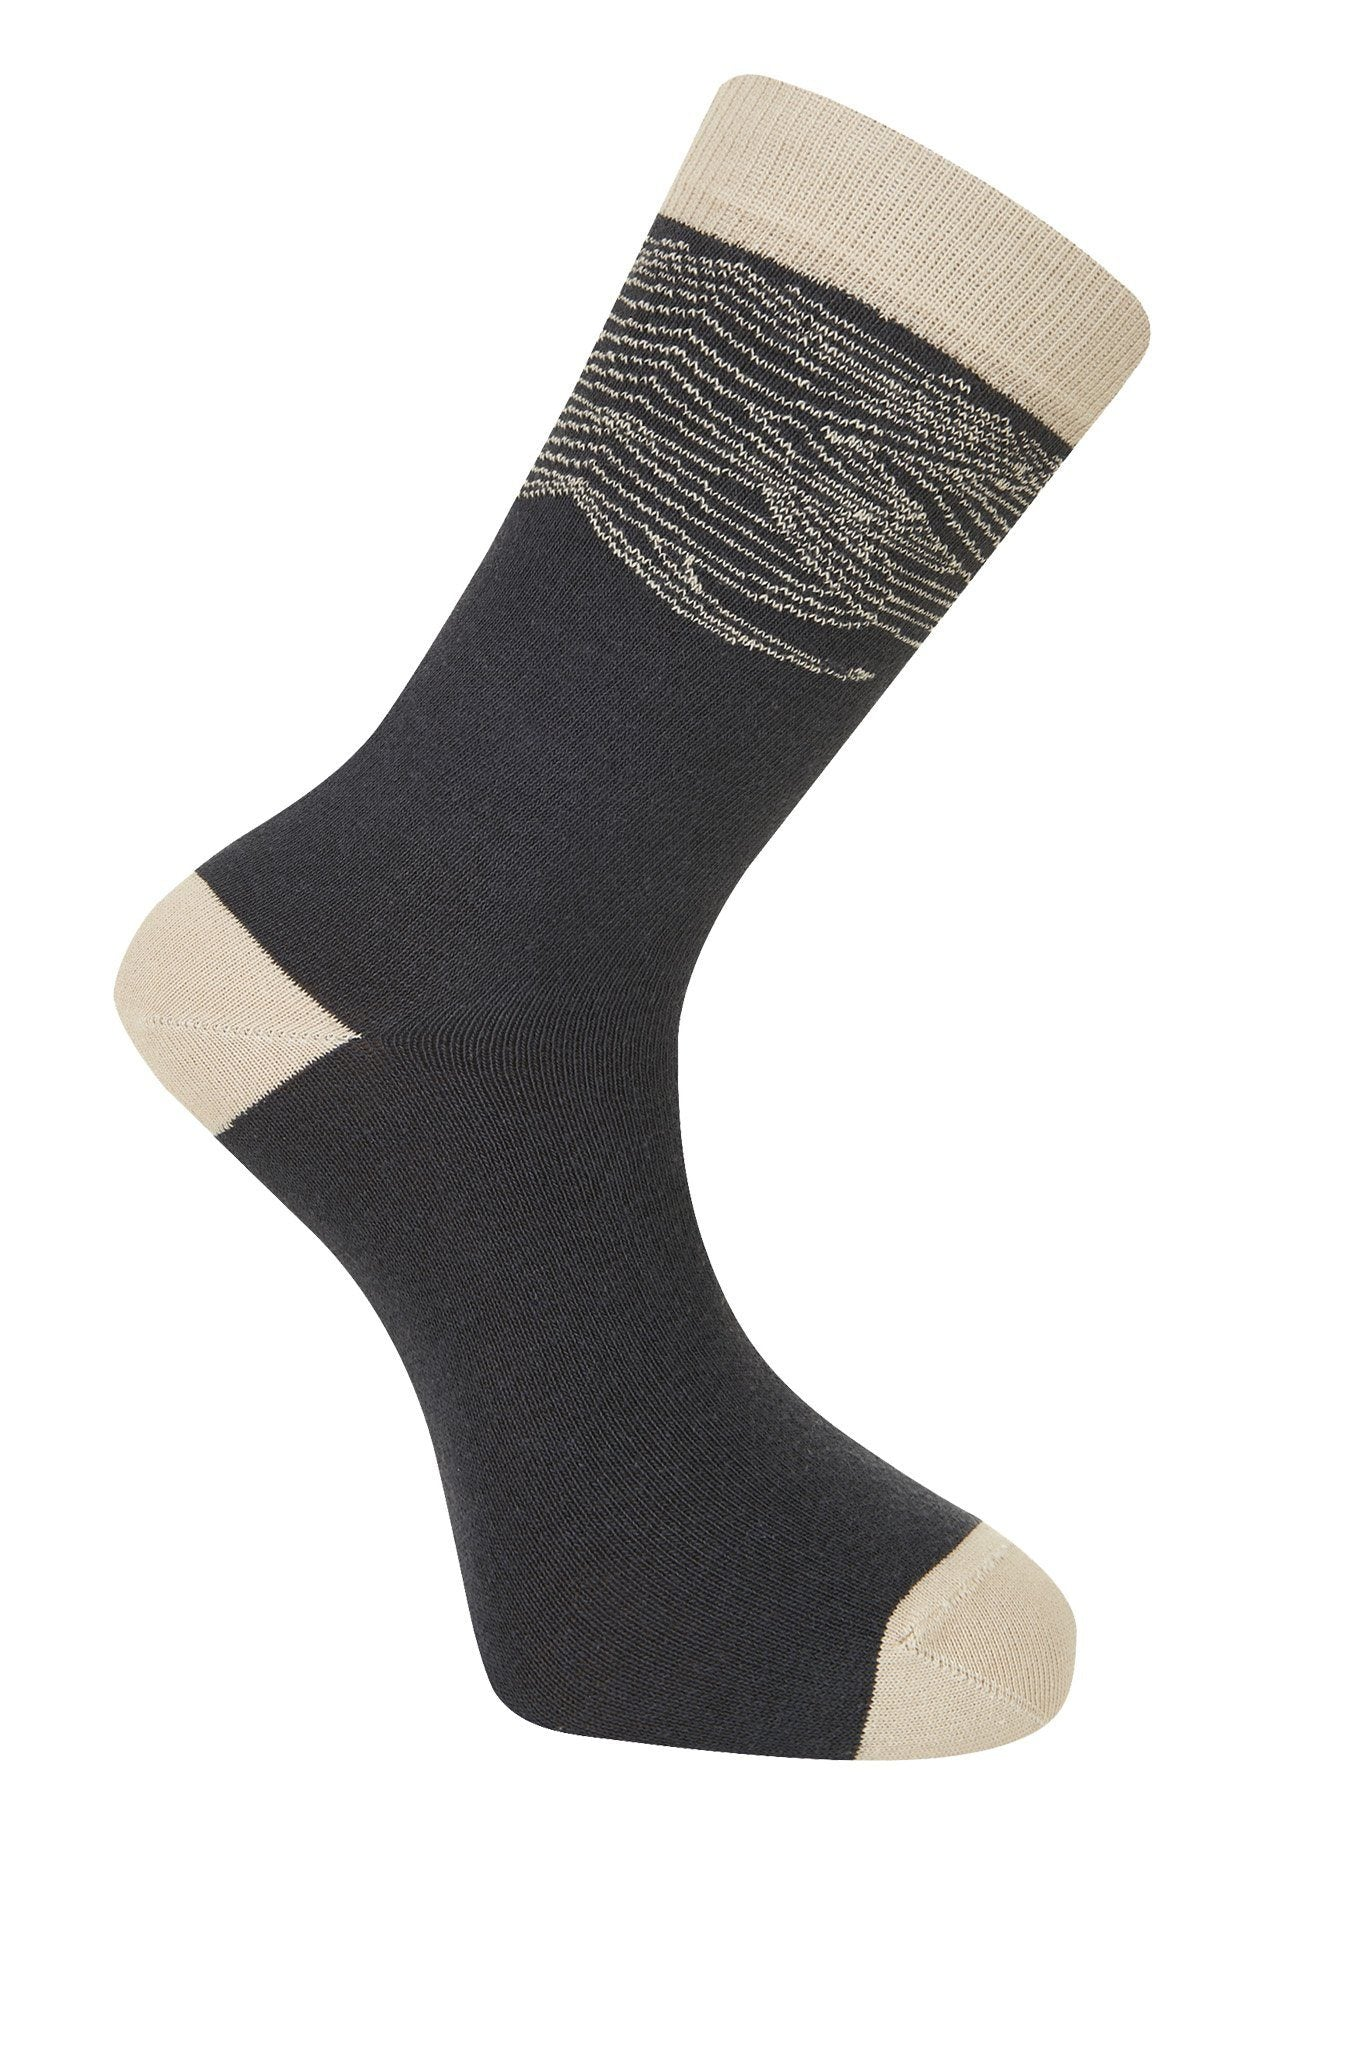 WAVE Coal Organic Cotton Socks - Komodo Fashion